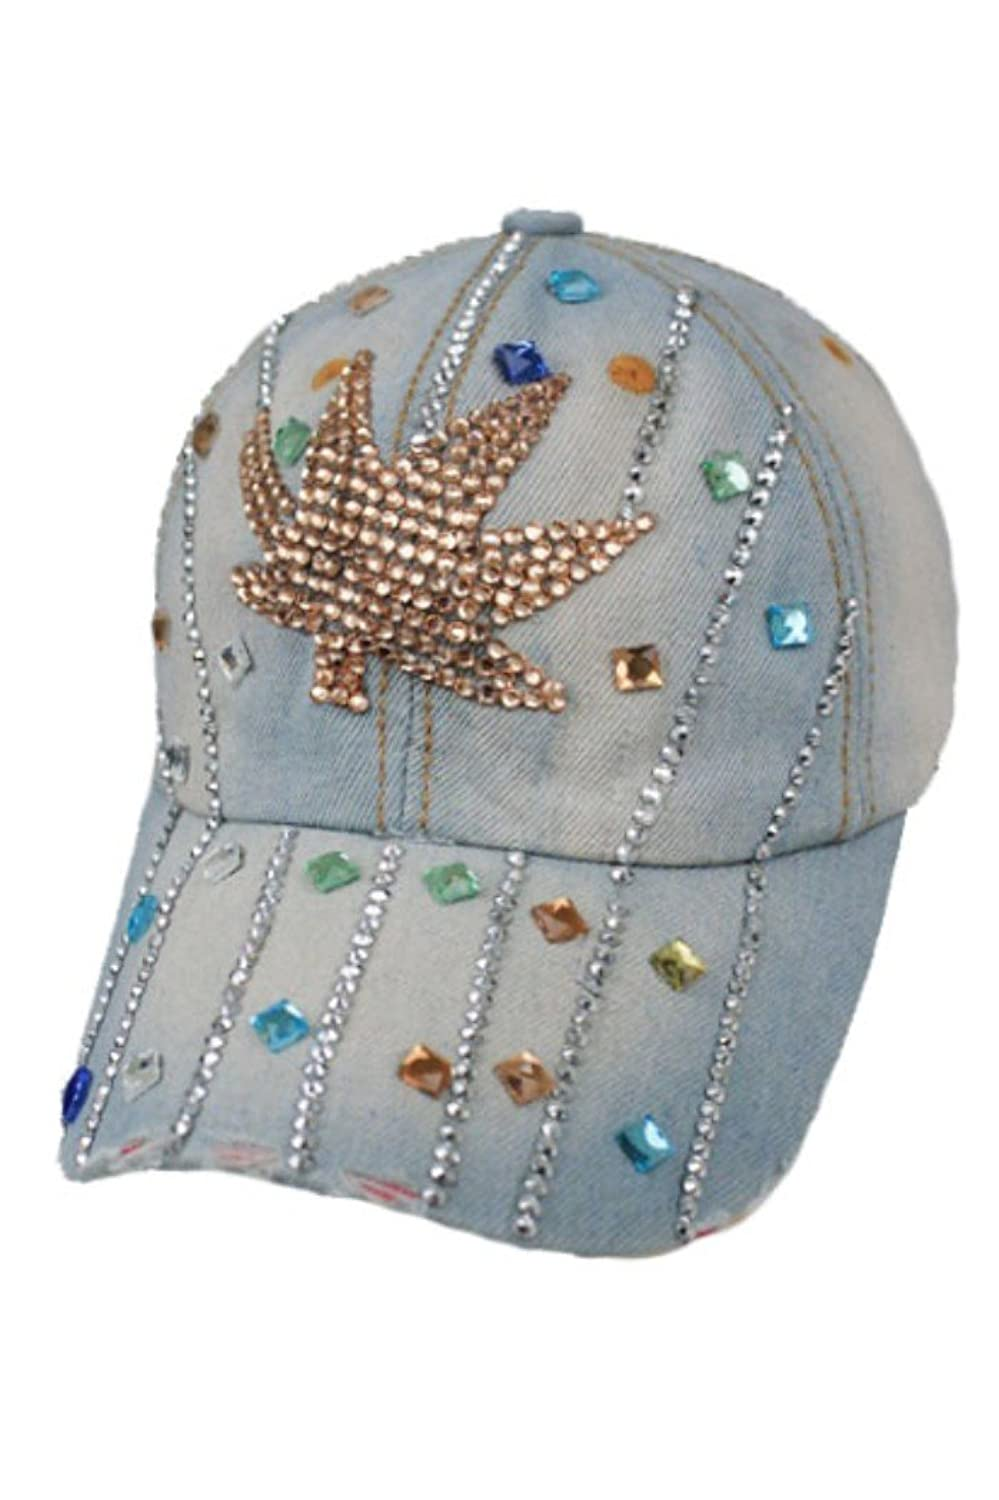 Light Denim Marijuana Weed Pot Leaf design Gold Studs Denim Washed Cap Hand-Made""